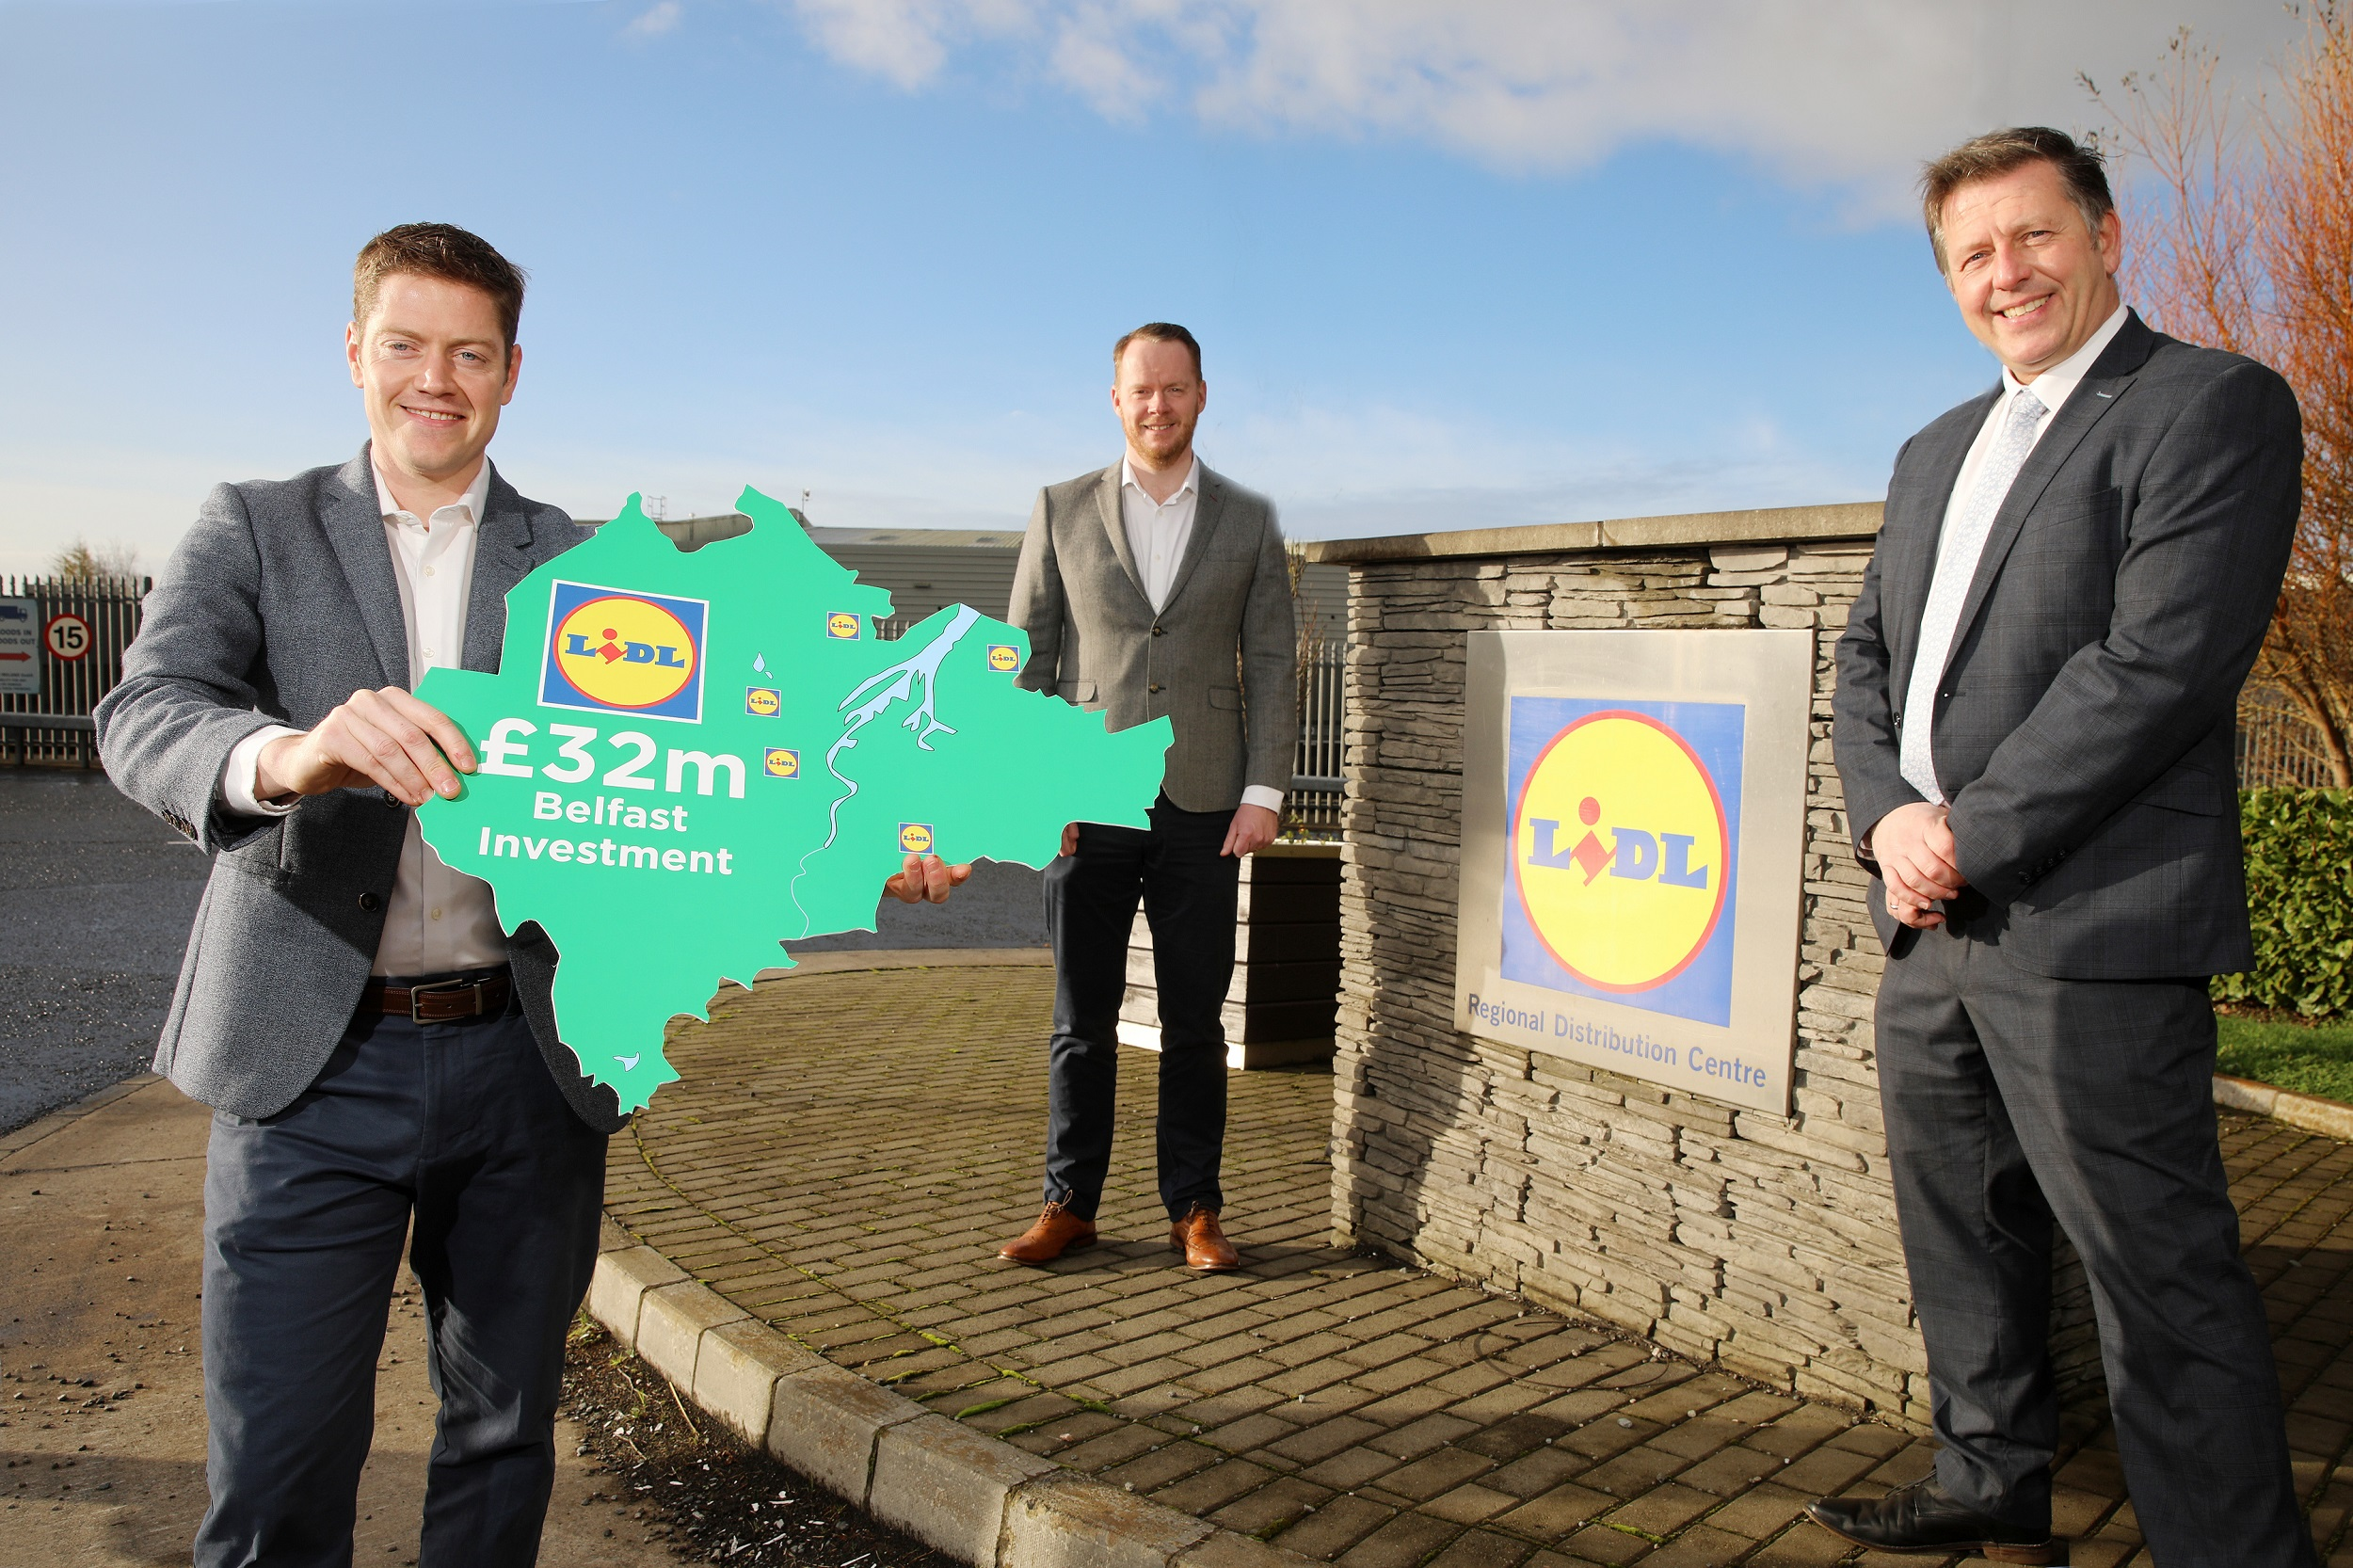 Five new Lidl stores with £32m investment pledged